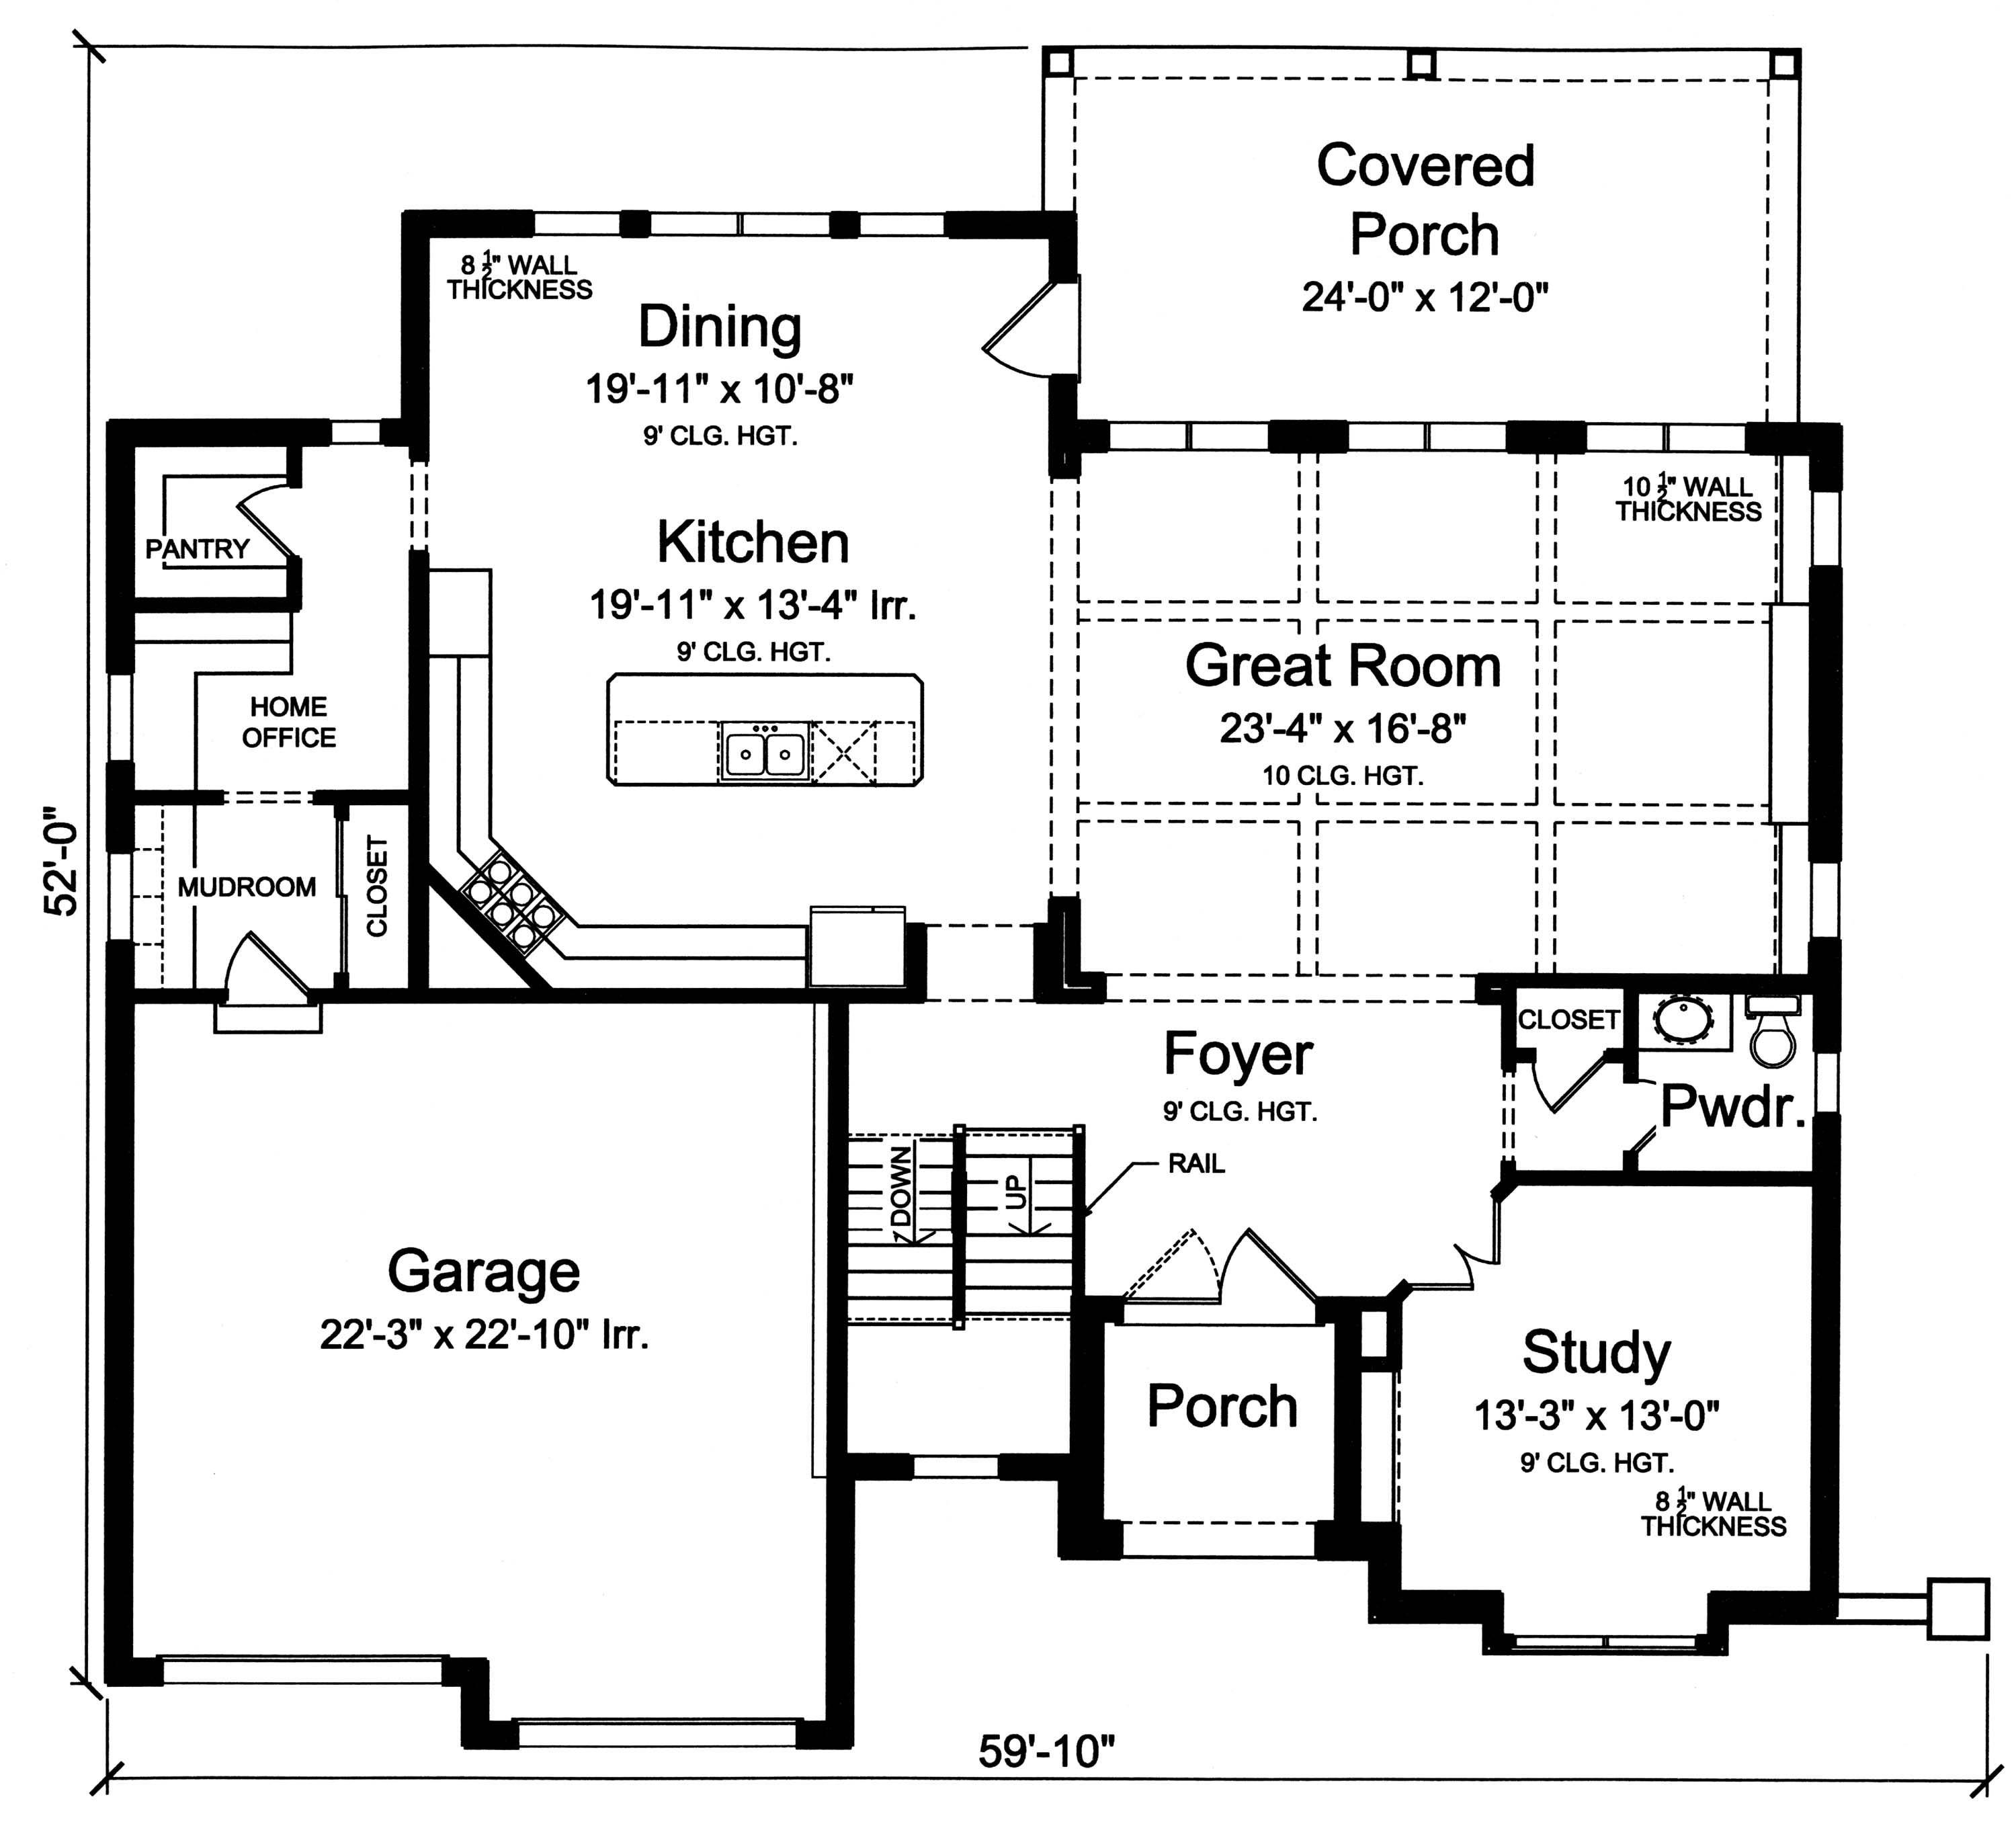 Luxury house plan 169 1120 4 bedrm 3287 sq ft home for 1120 westchester place floor plan